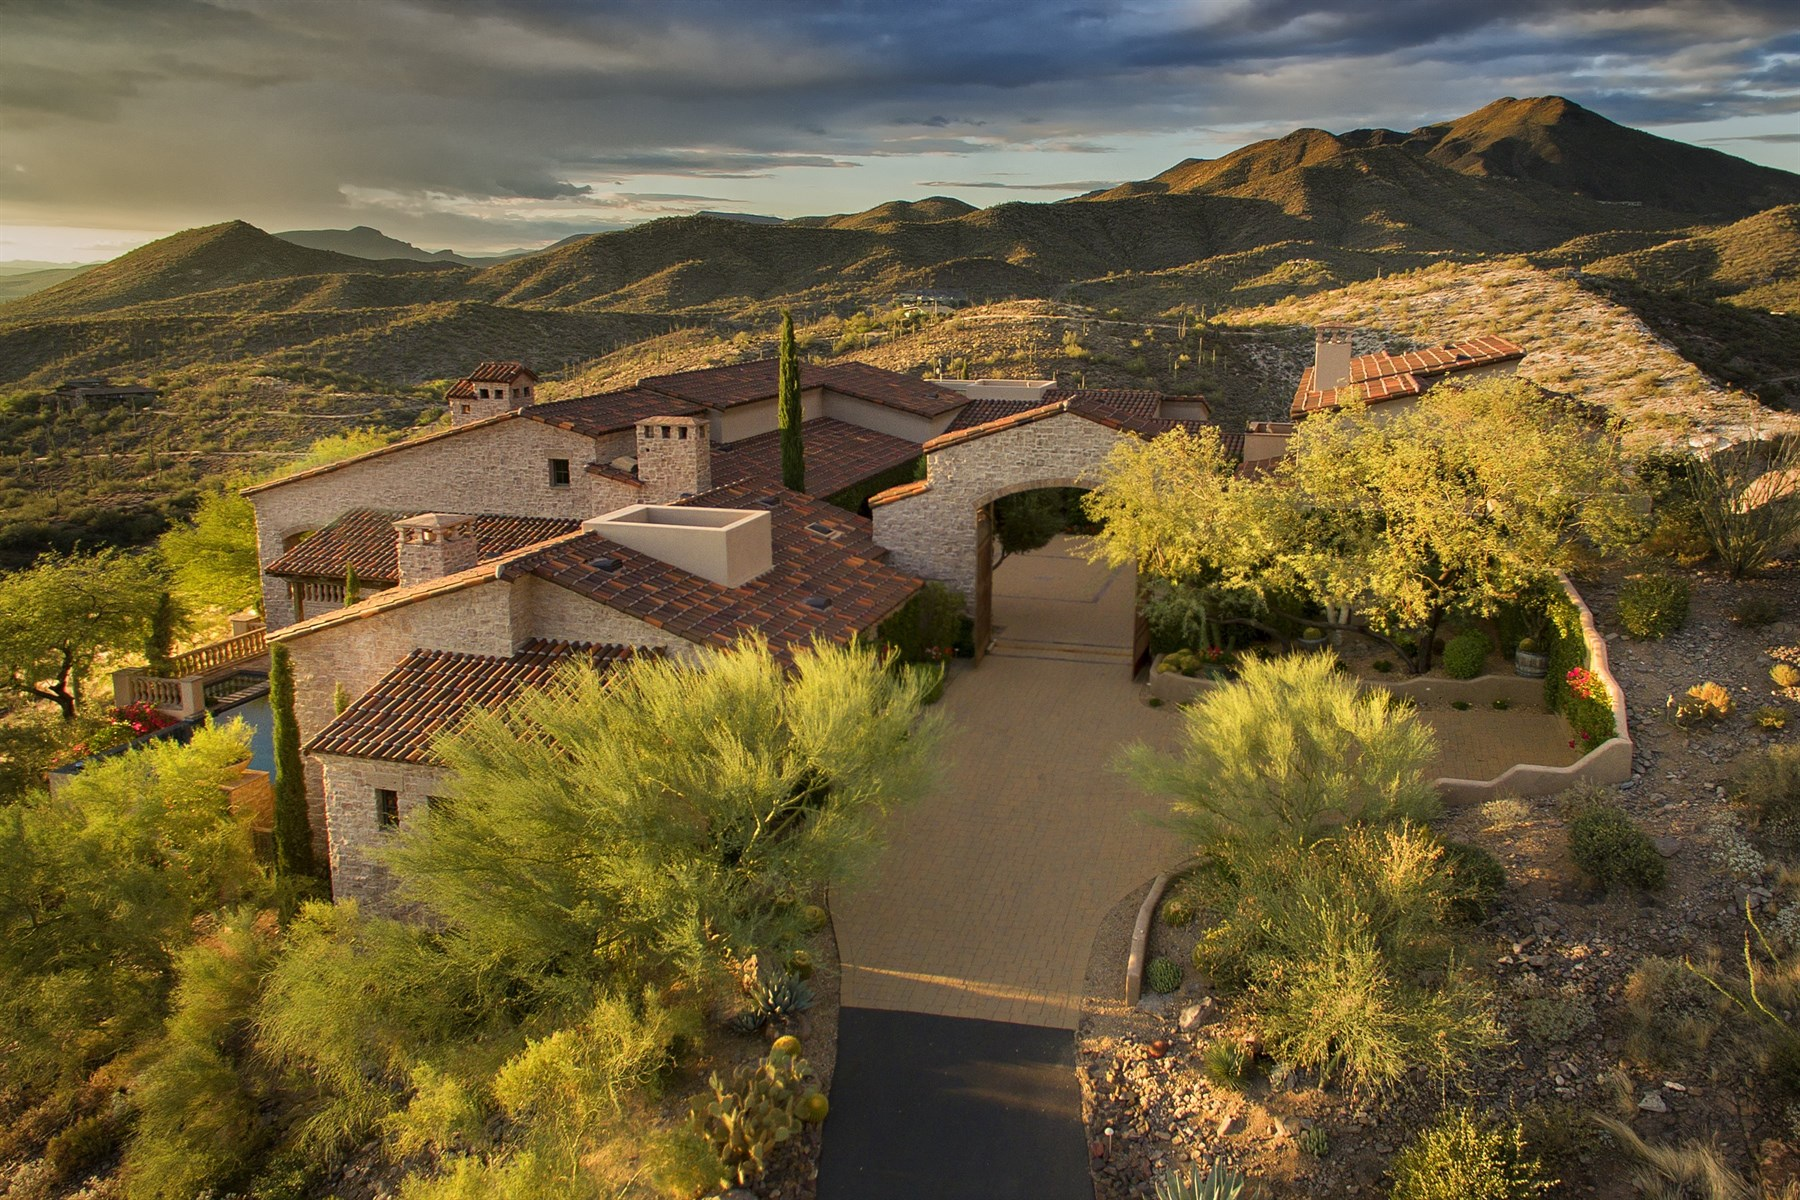 一戸建て のために 売買 アット Private gated 6+ acre estate perched on a hillside in Carefree Ranch 39429 N Tom Morris Rd Scottsdale, アリゾナ, 85262 アメリカ合衆国